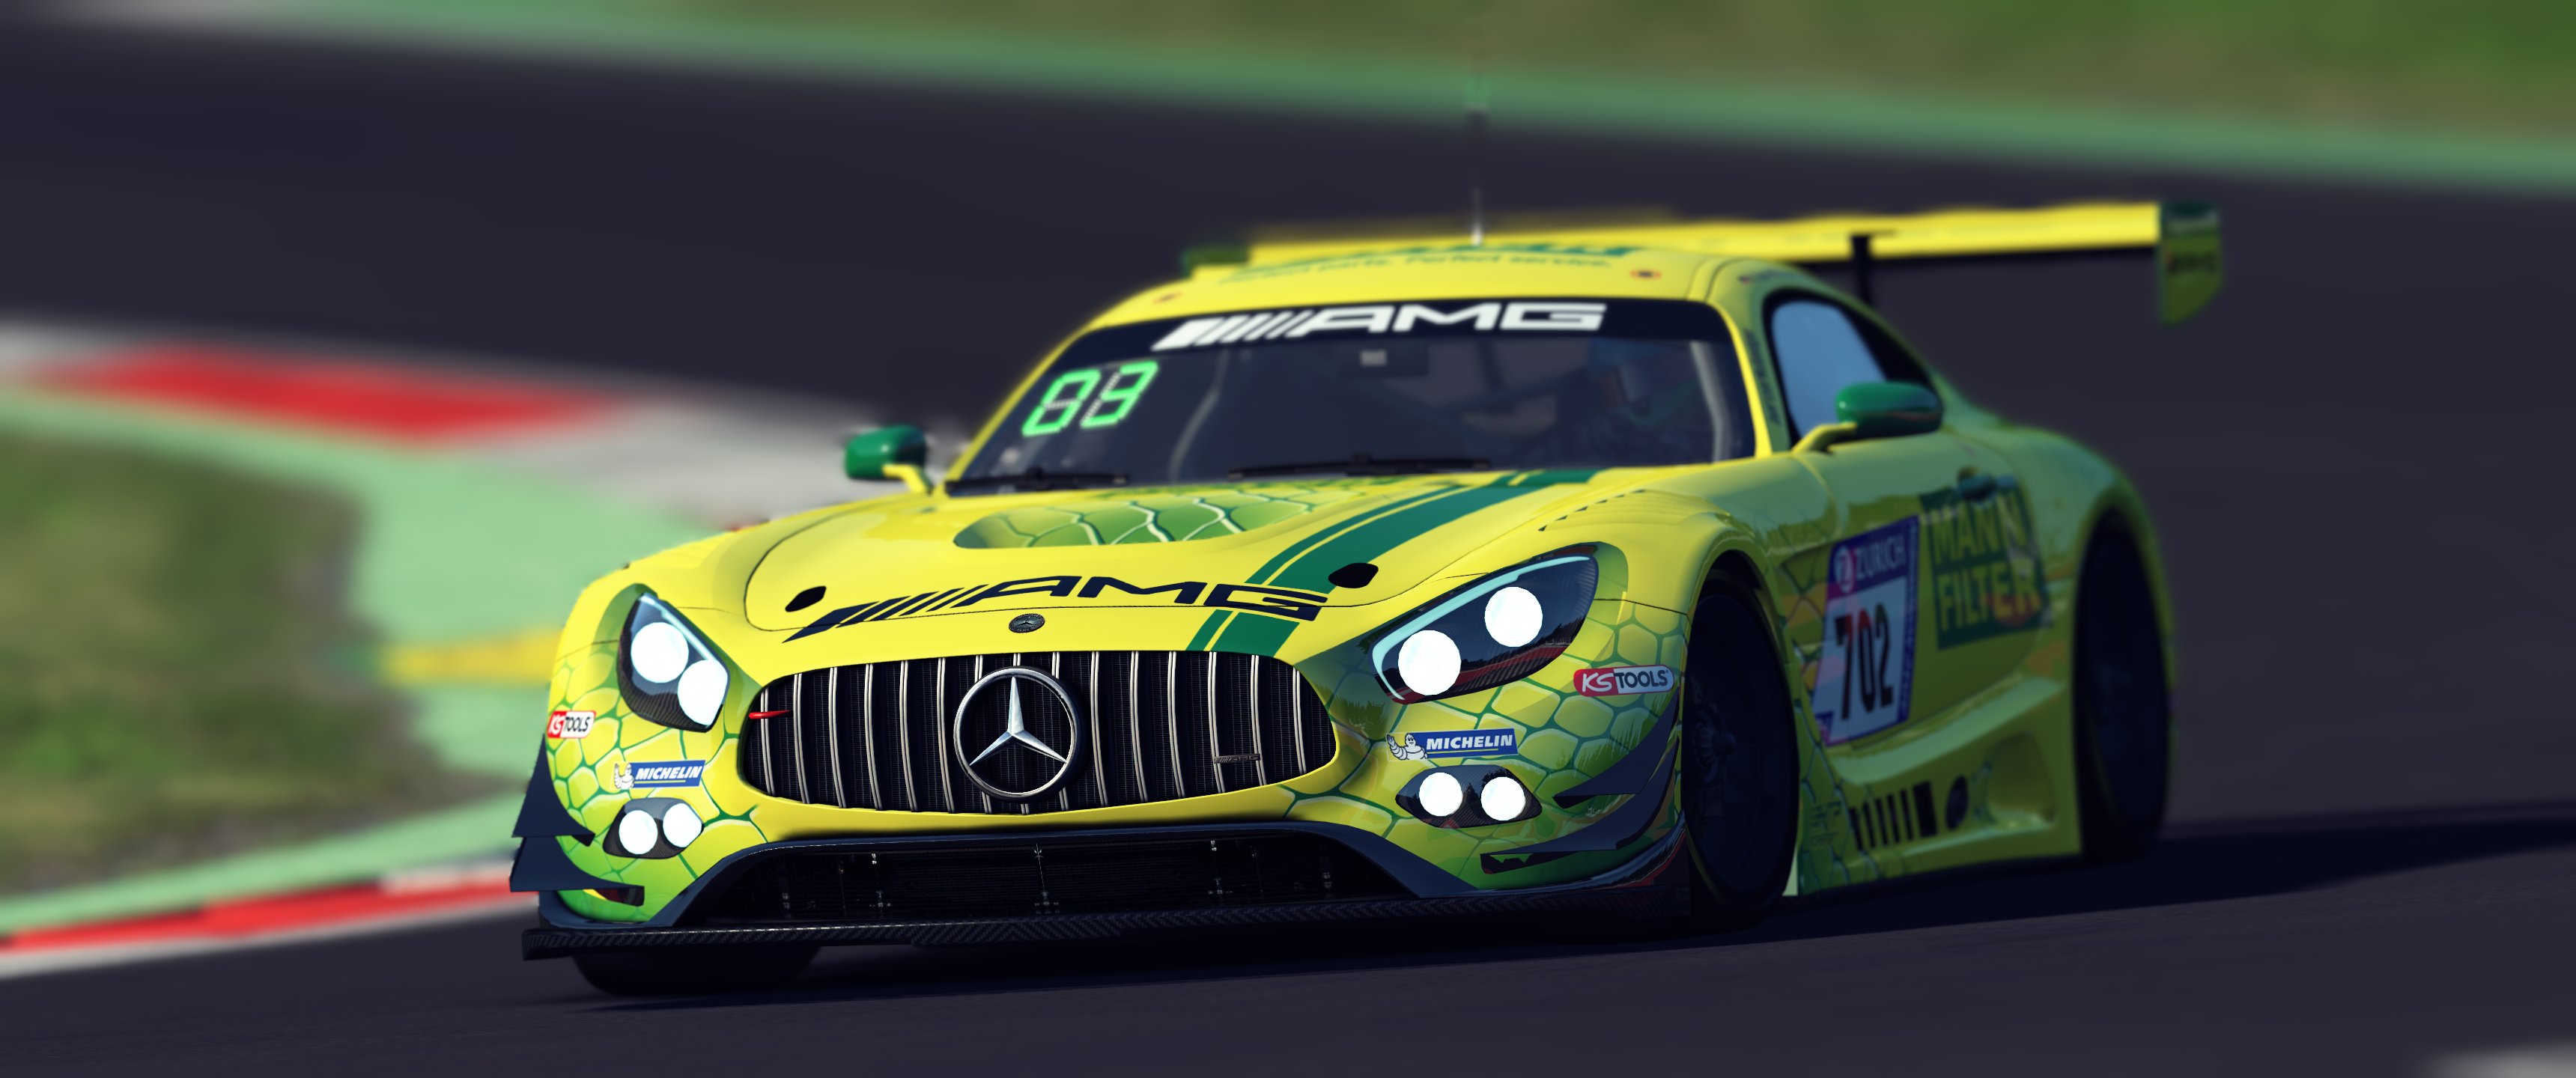 1rFactor2 2019-02-07 01-14-57-62.png